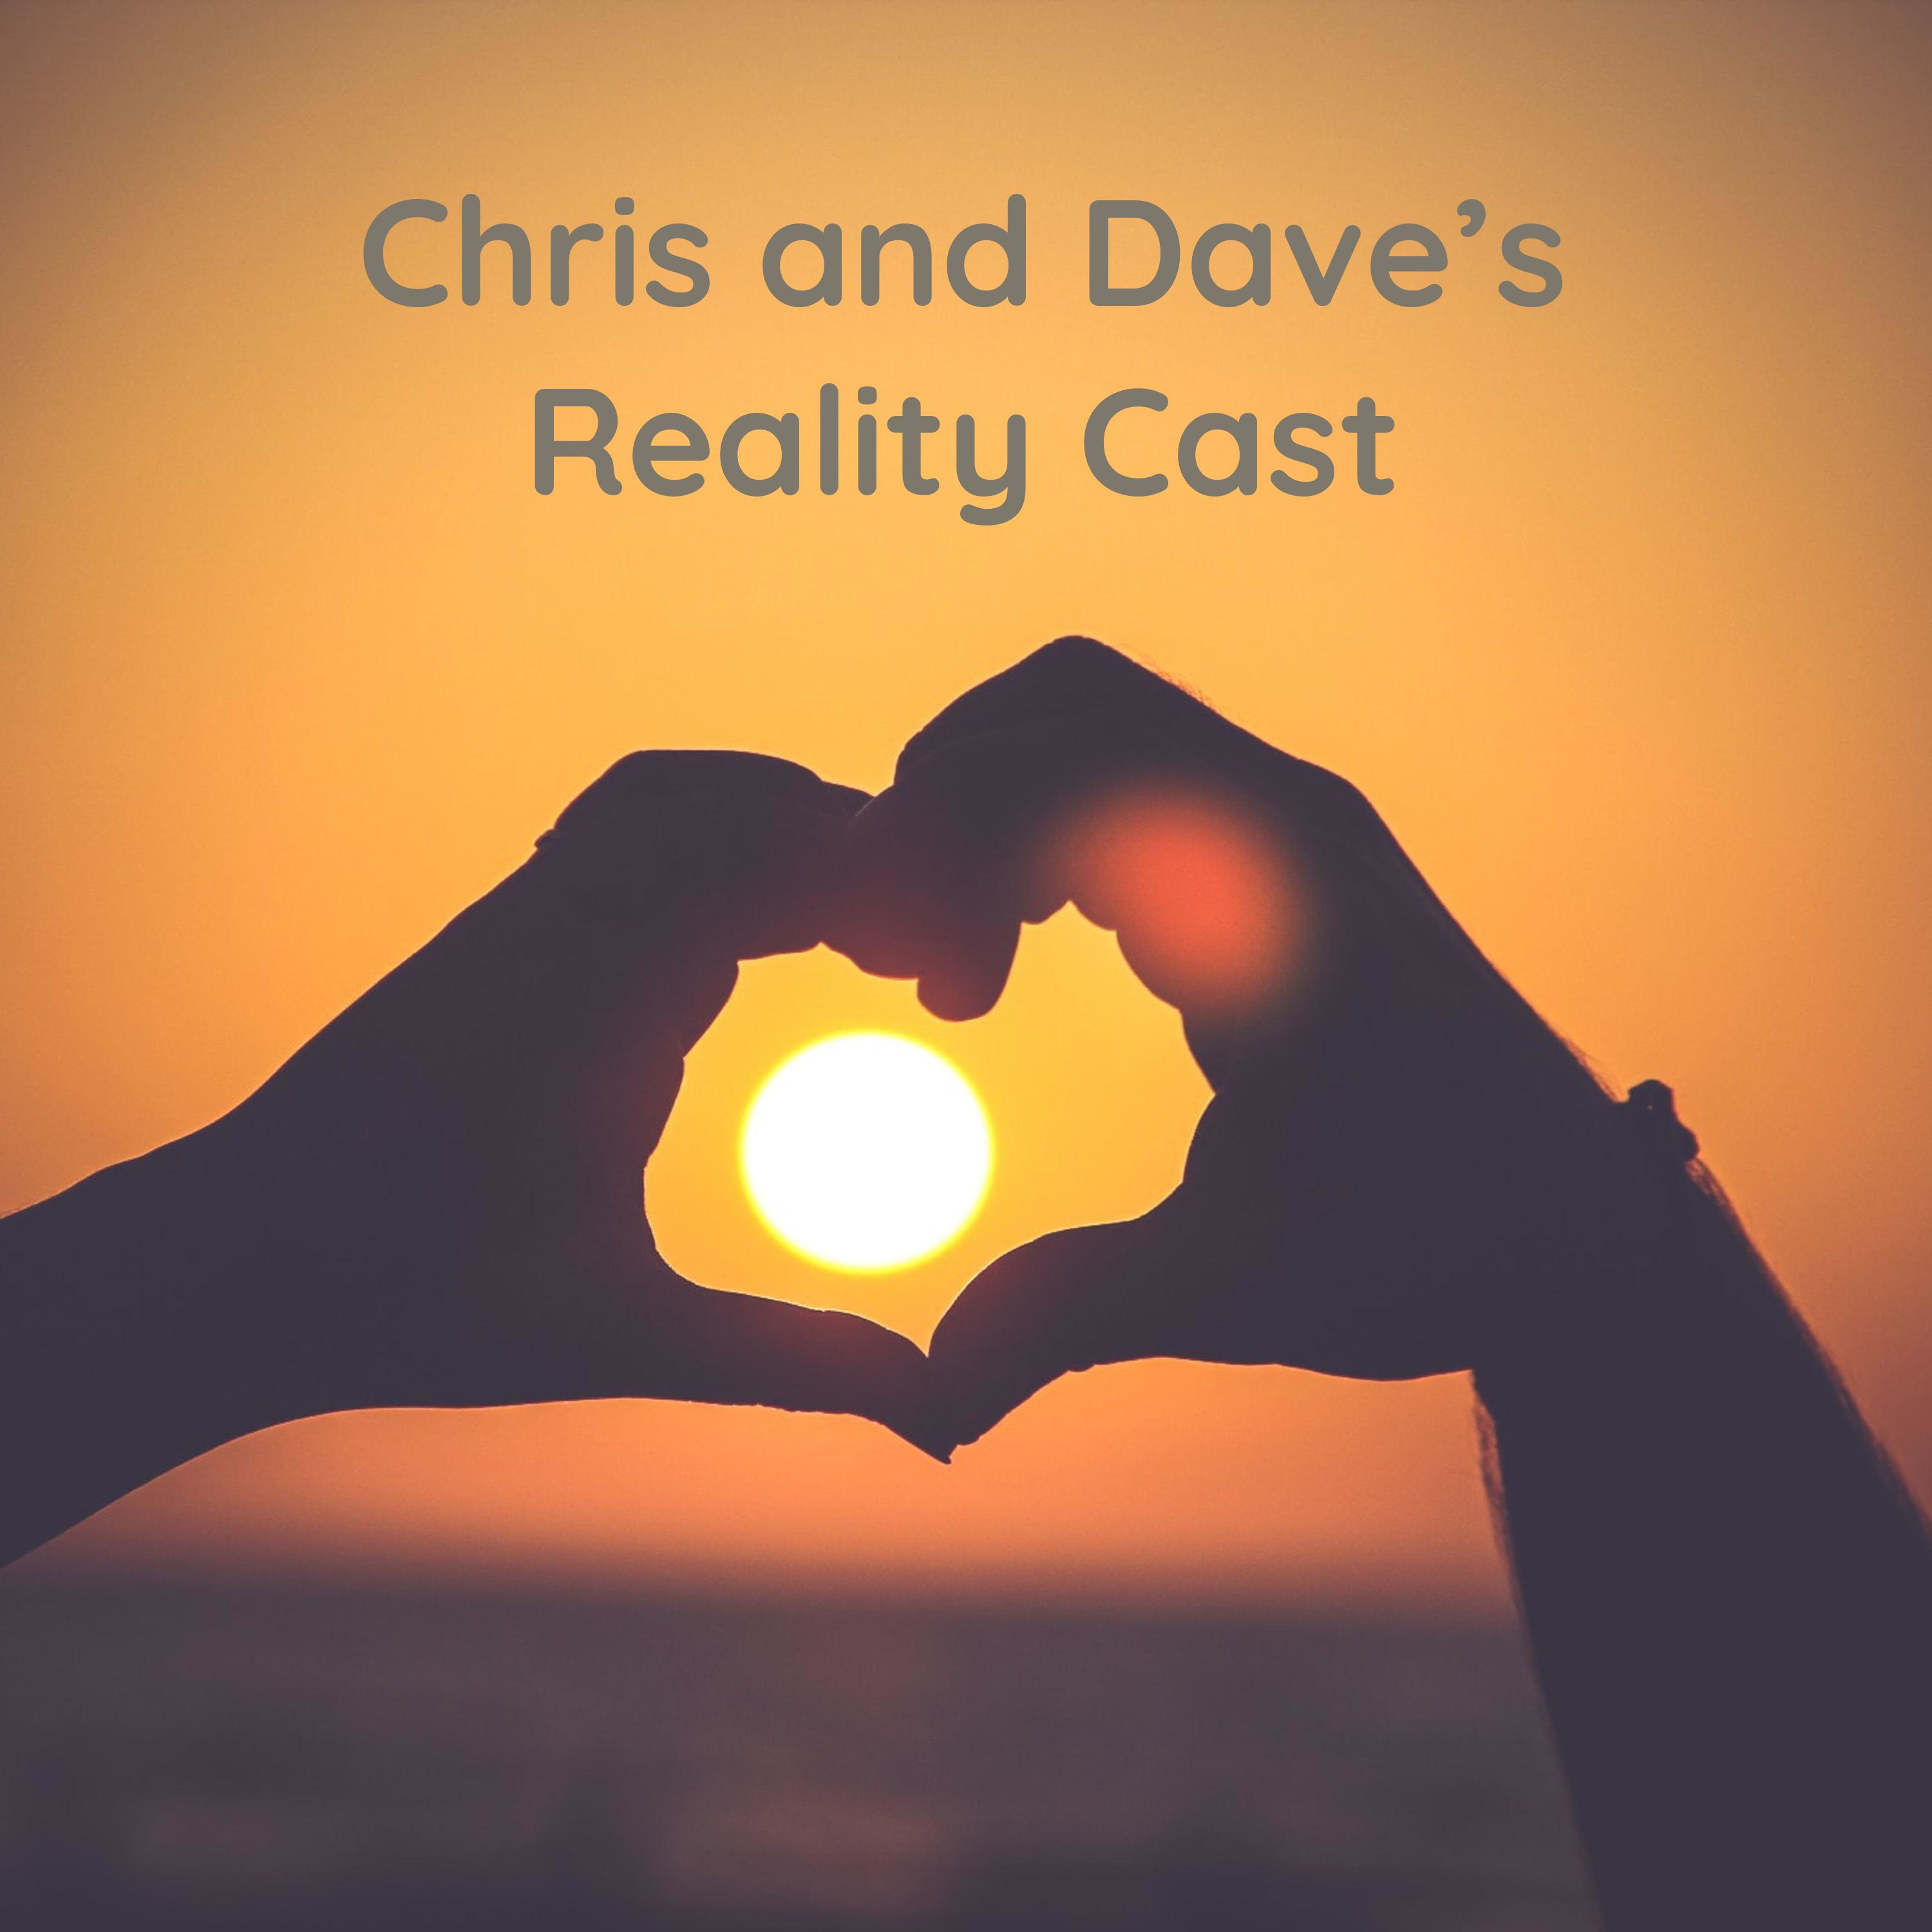 Chris and Dave's Reality Cast